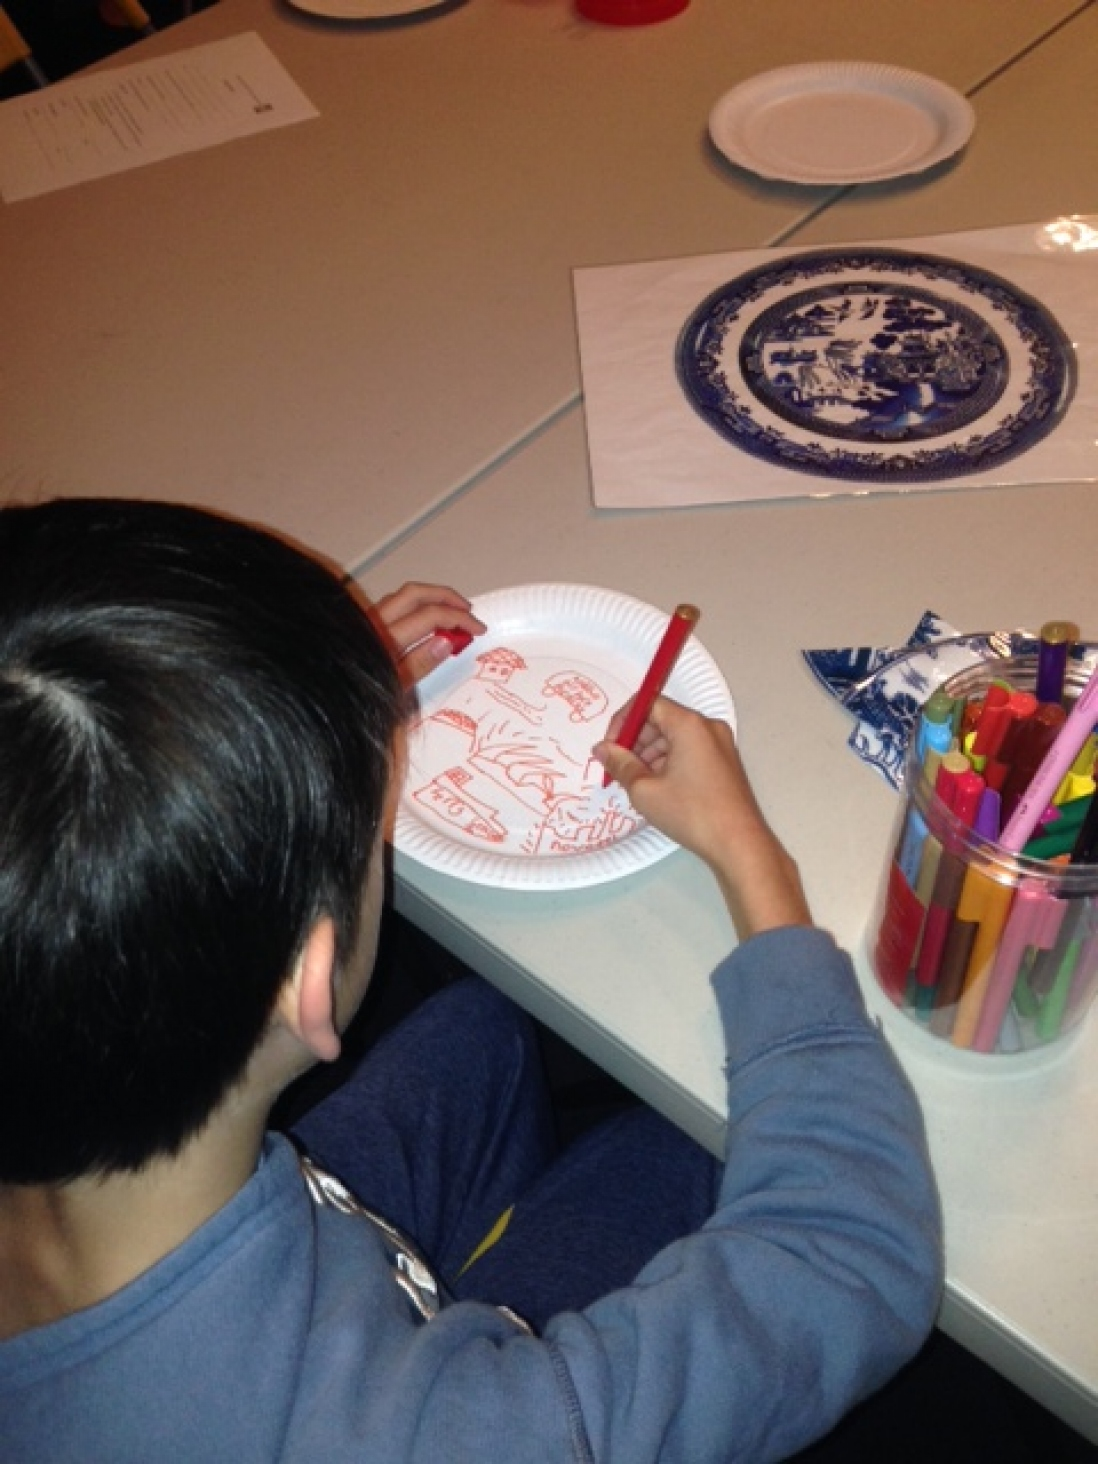 Back of boy's head, with his hand visible, drawing on paper plate with colour design.